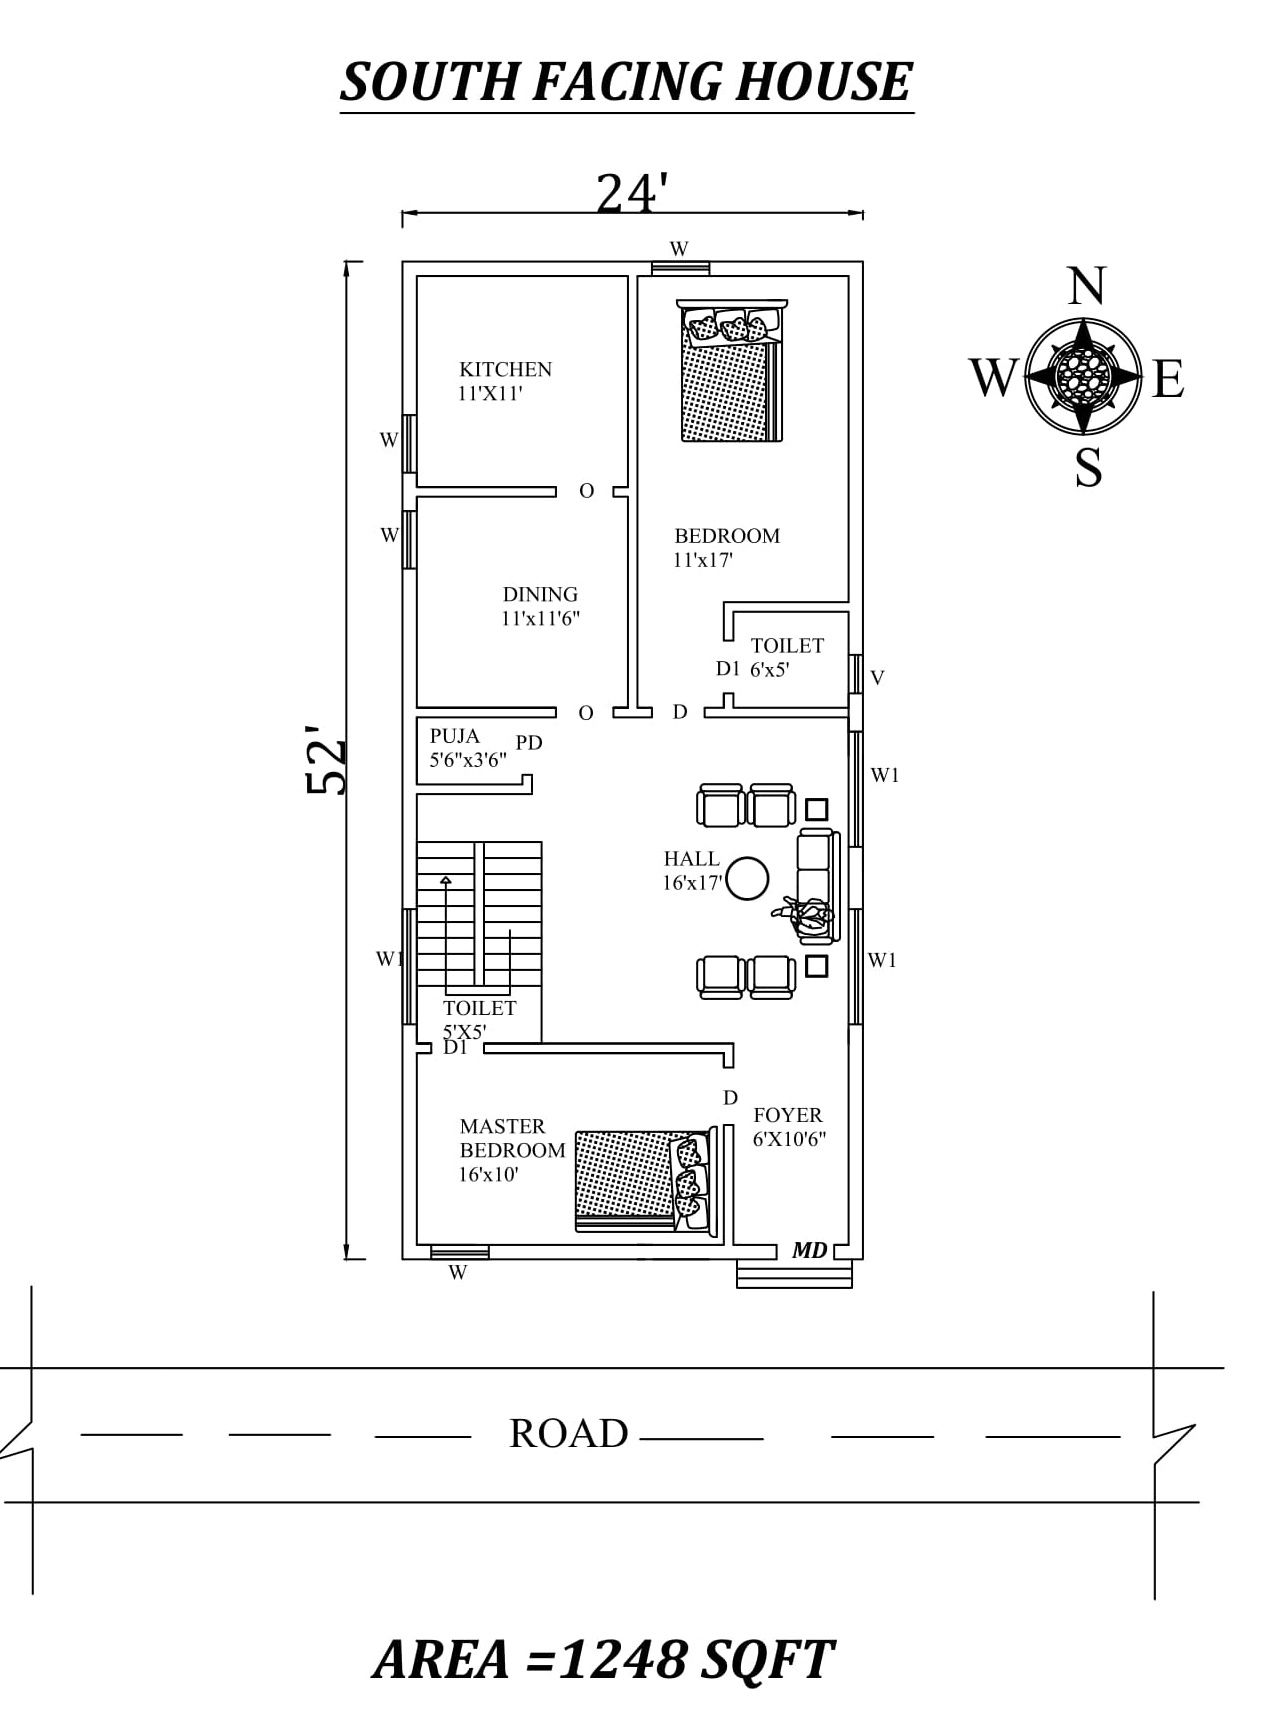 24 X 52 2bhk Awesome Furnished South Facing House Plan As Per Vastu Shastra Autocad Dwg And Pdf South Facing House House Plans Little House Plans